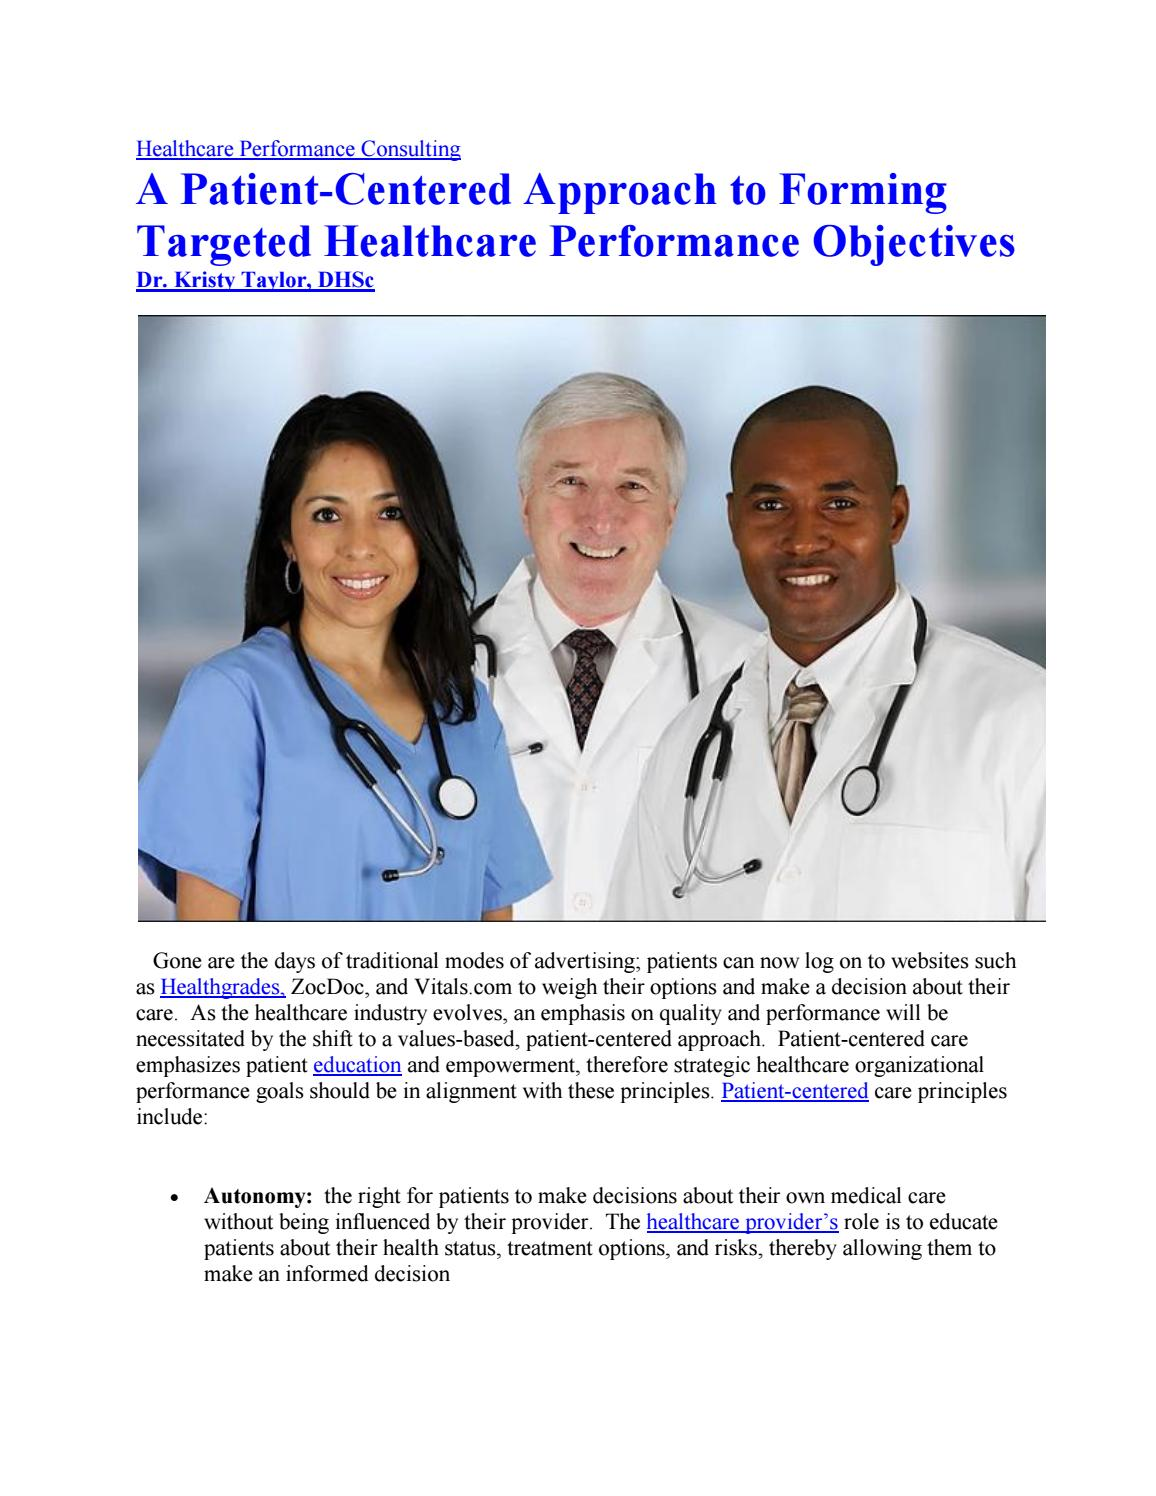 Forum on this topic: Targeting Healthcare for Women Patients, targeting-healthcare-for-women-patients/